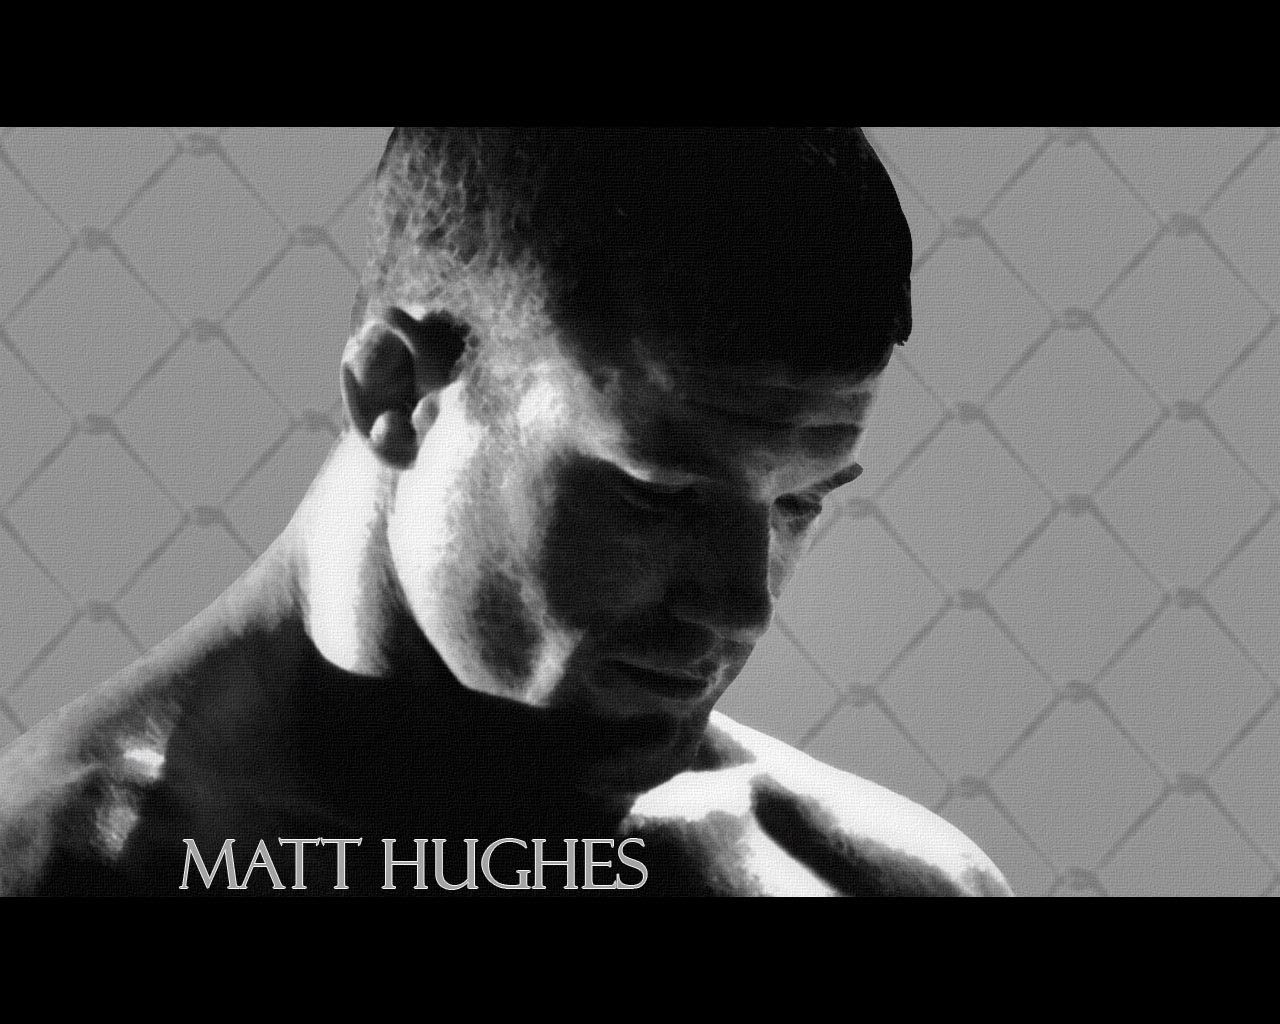 Matt Hughes Wallpapers HD Collection For Free Download